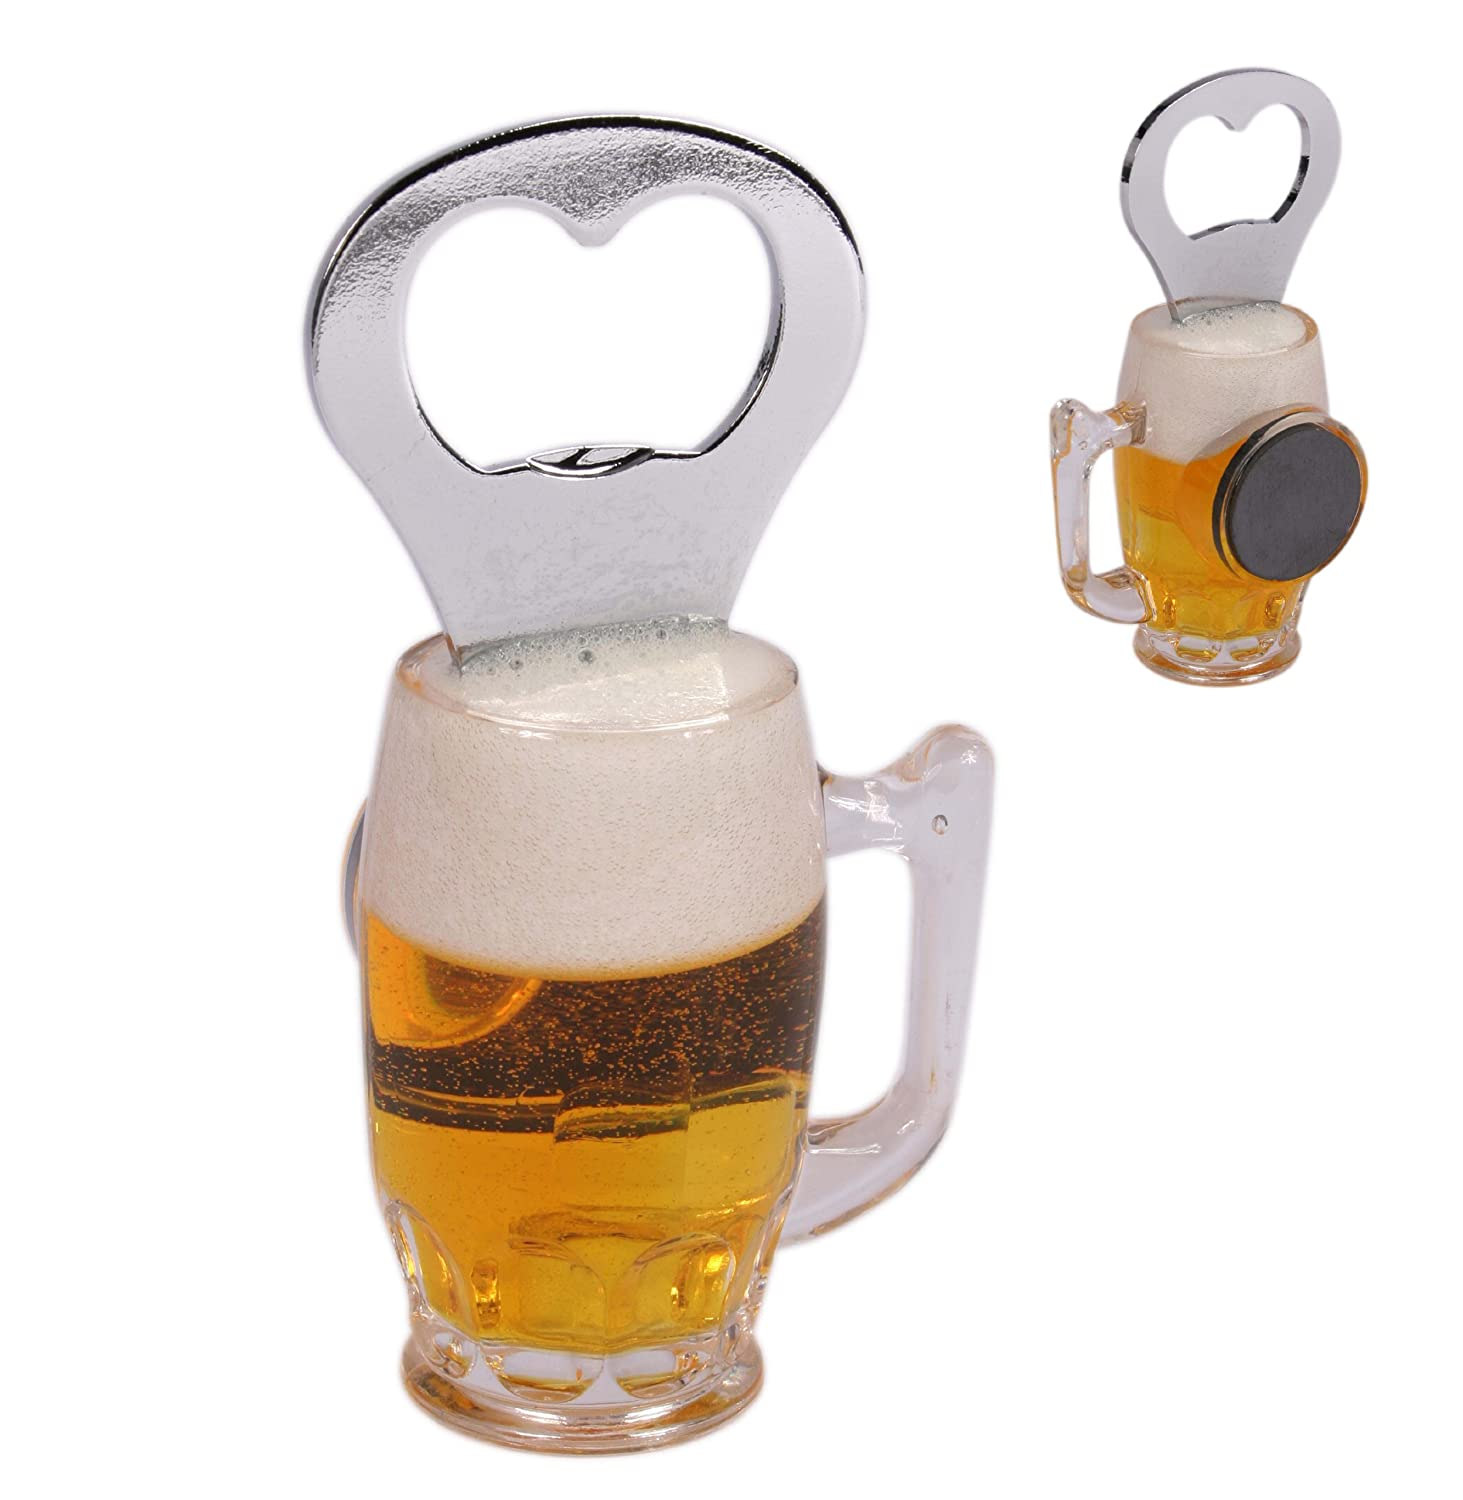 Novelty Beer Glass with Magnet Bottle Opener - Mens, Mans, Gents, His, Him Quality, Novelty Secret Santa Presents, Gifts Ideas Great Gifts